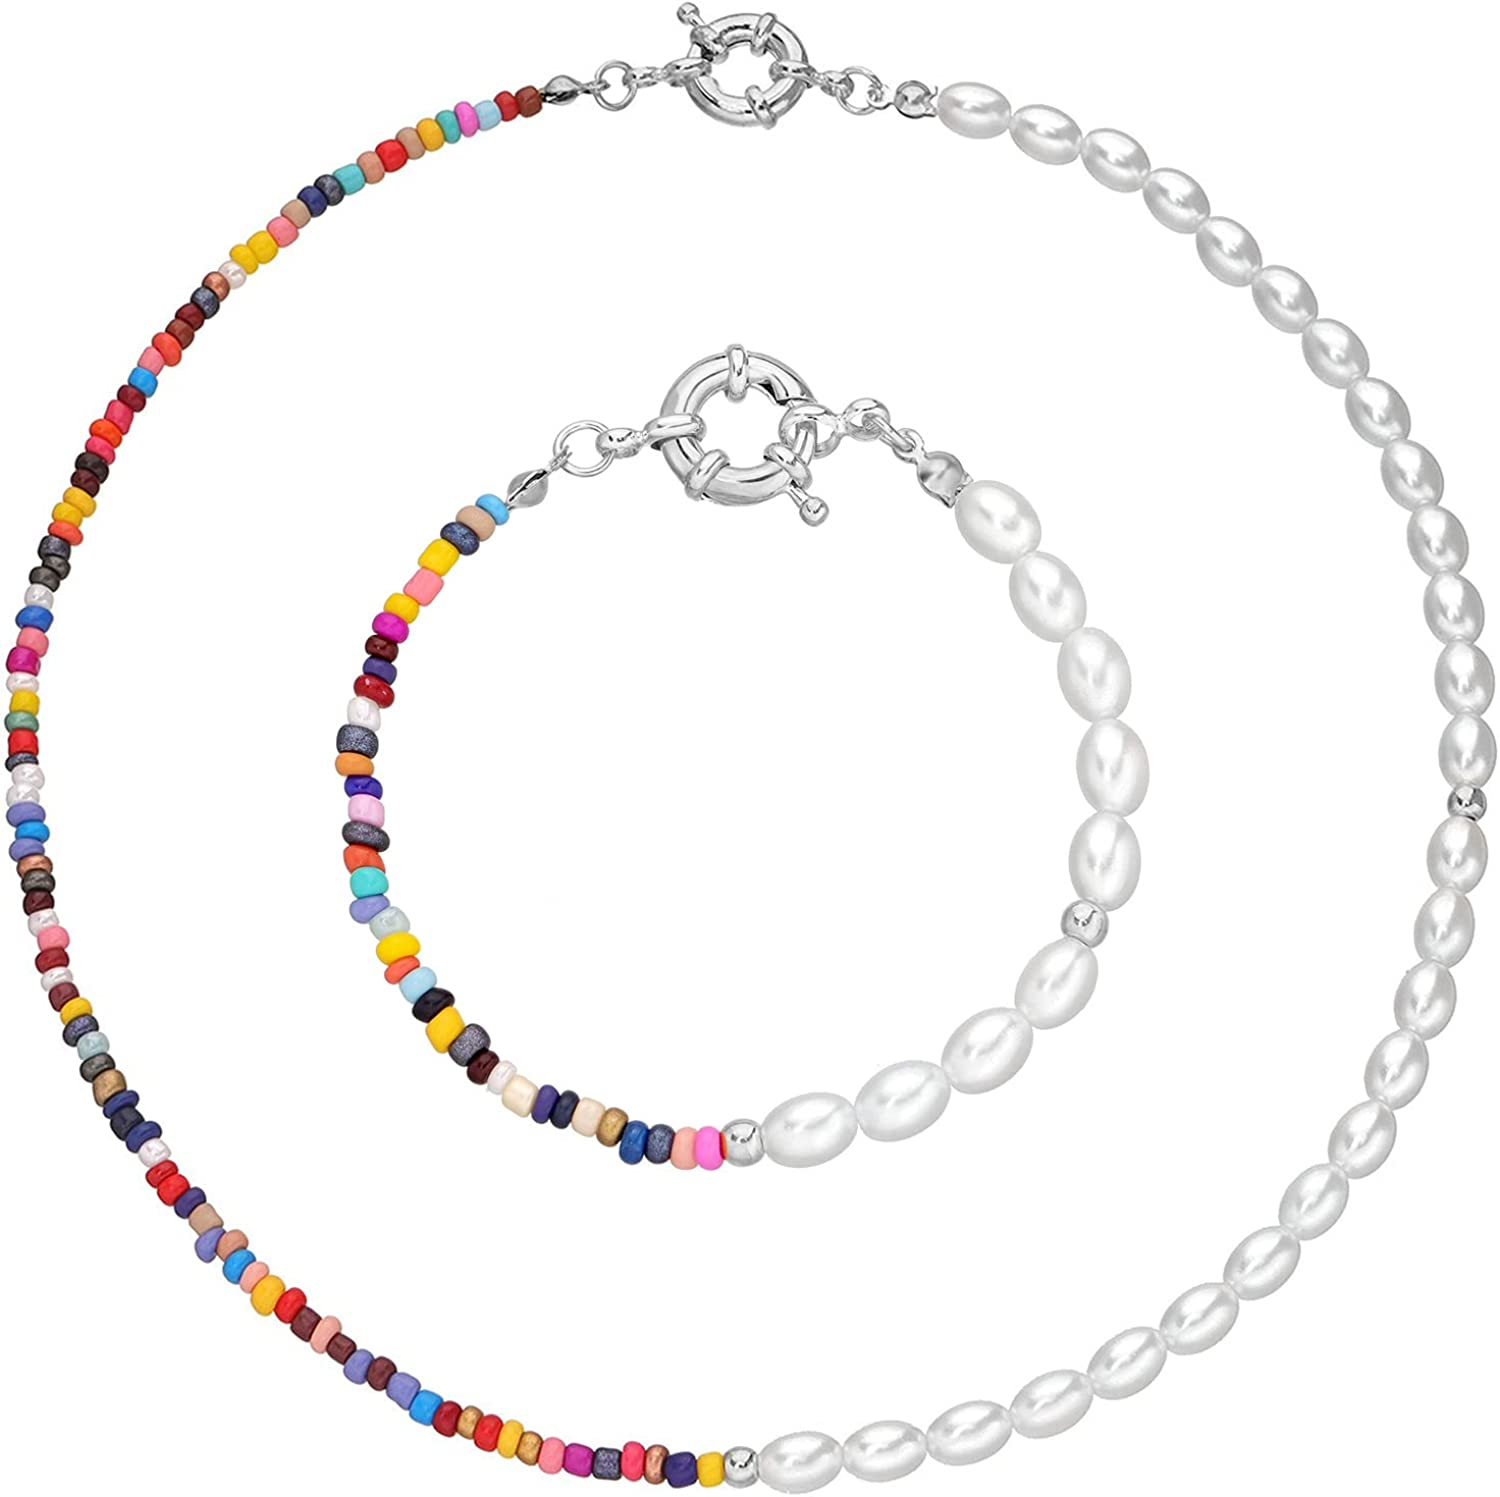 caiyao Bohemian Bead Imitation Pearl Link Chain Choker Necklace and Bracelet for Women Girls Handmade Colorful Seed Beaded Stackable Birthday Charm Jewelry Set